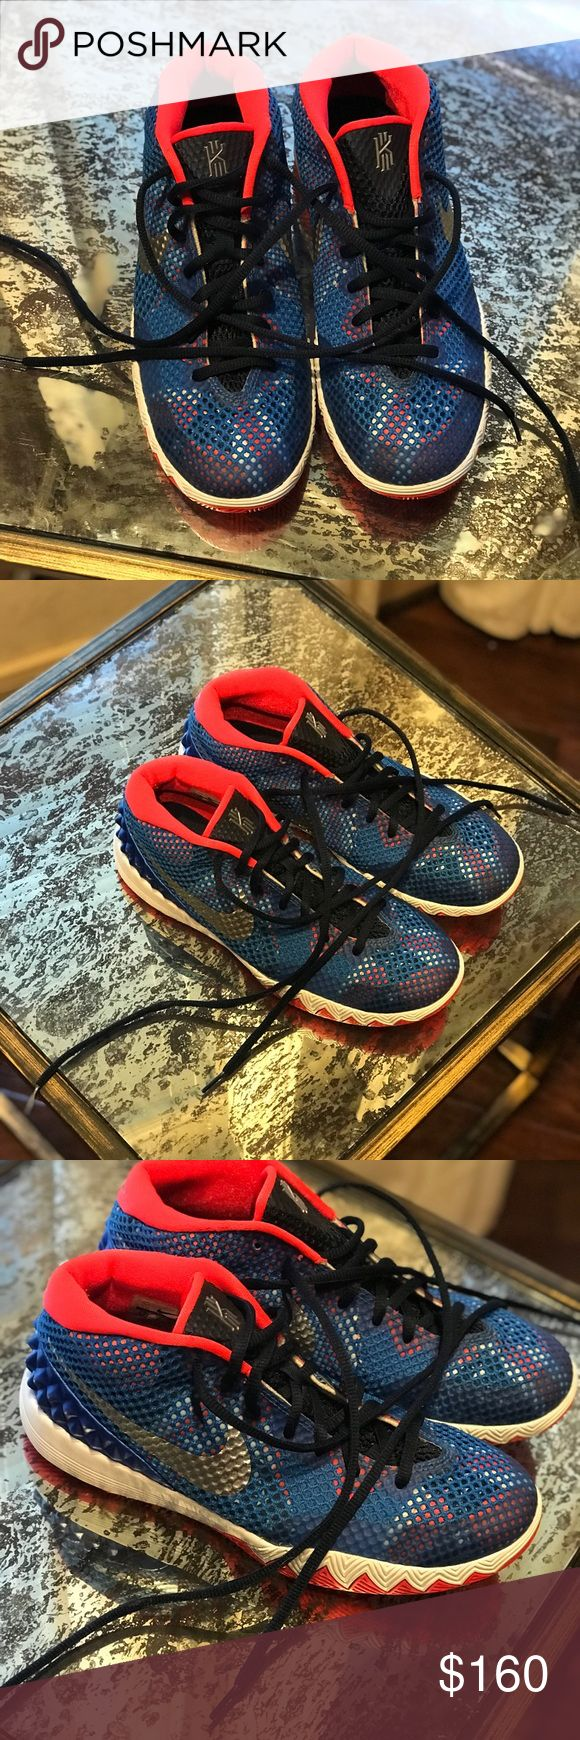 Kyrie Irving 1 Elizabeth Edition 6.5 Youth Nike Kyrie Irving 1 Elizabeth Edition Size 6.5 Youth (Big Boy) Nike Sneaker Sneakers Tennis Shoe Great Condition Clean toes Clean Soles Clean Inside Laces are fresh Minimal wear on blue heel spikes, see last photo Nike Shoes Sneakers